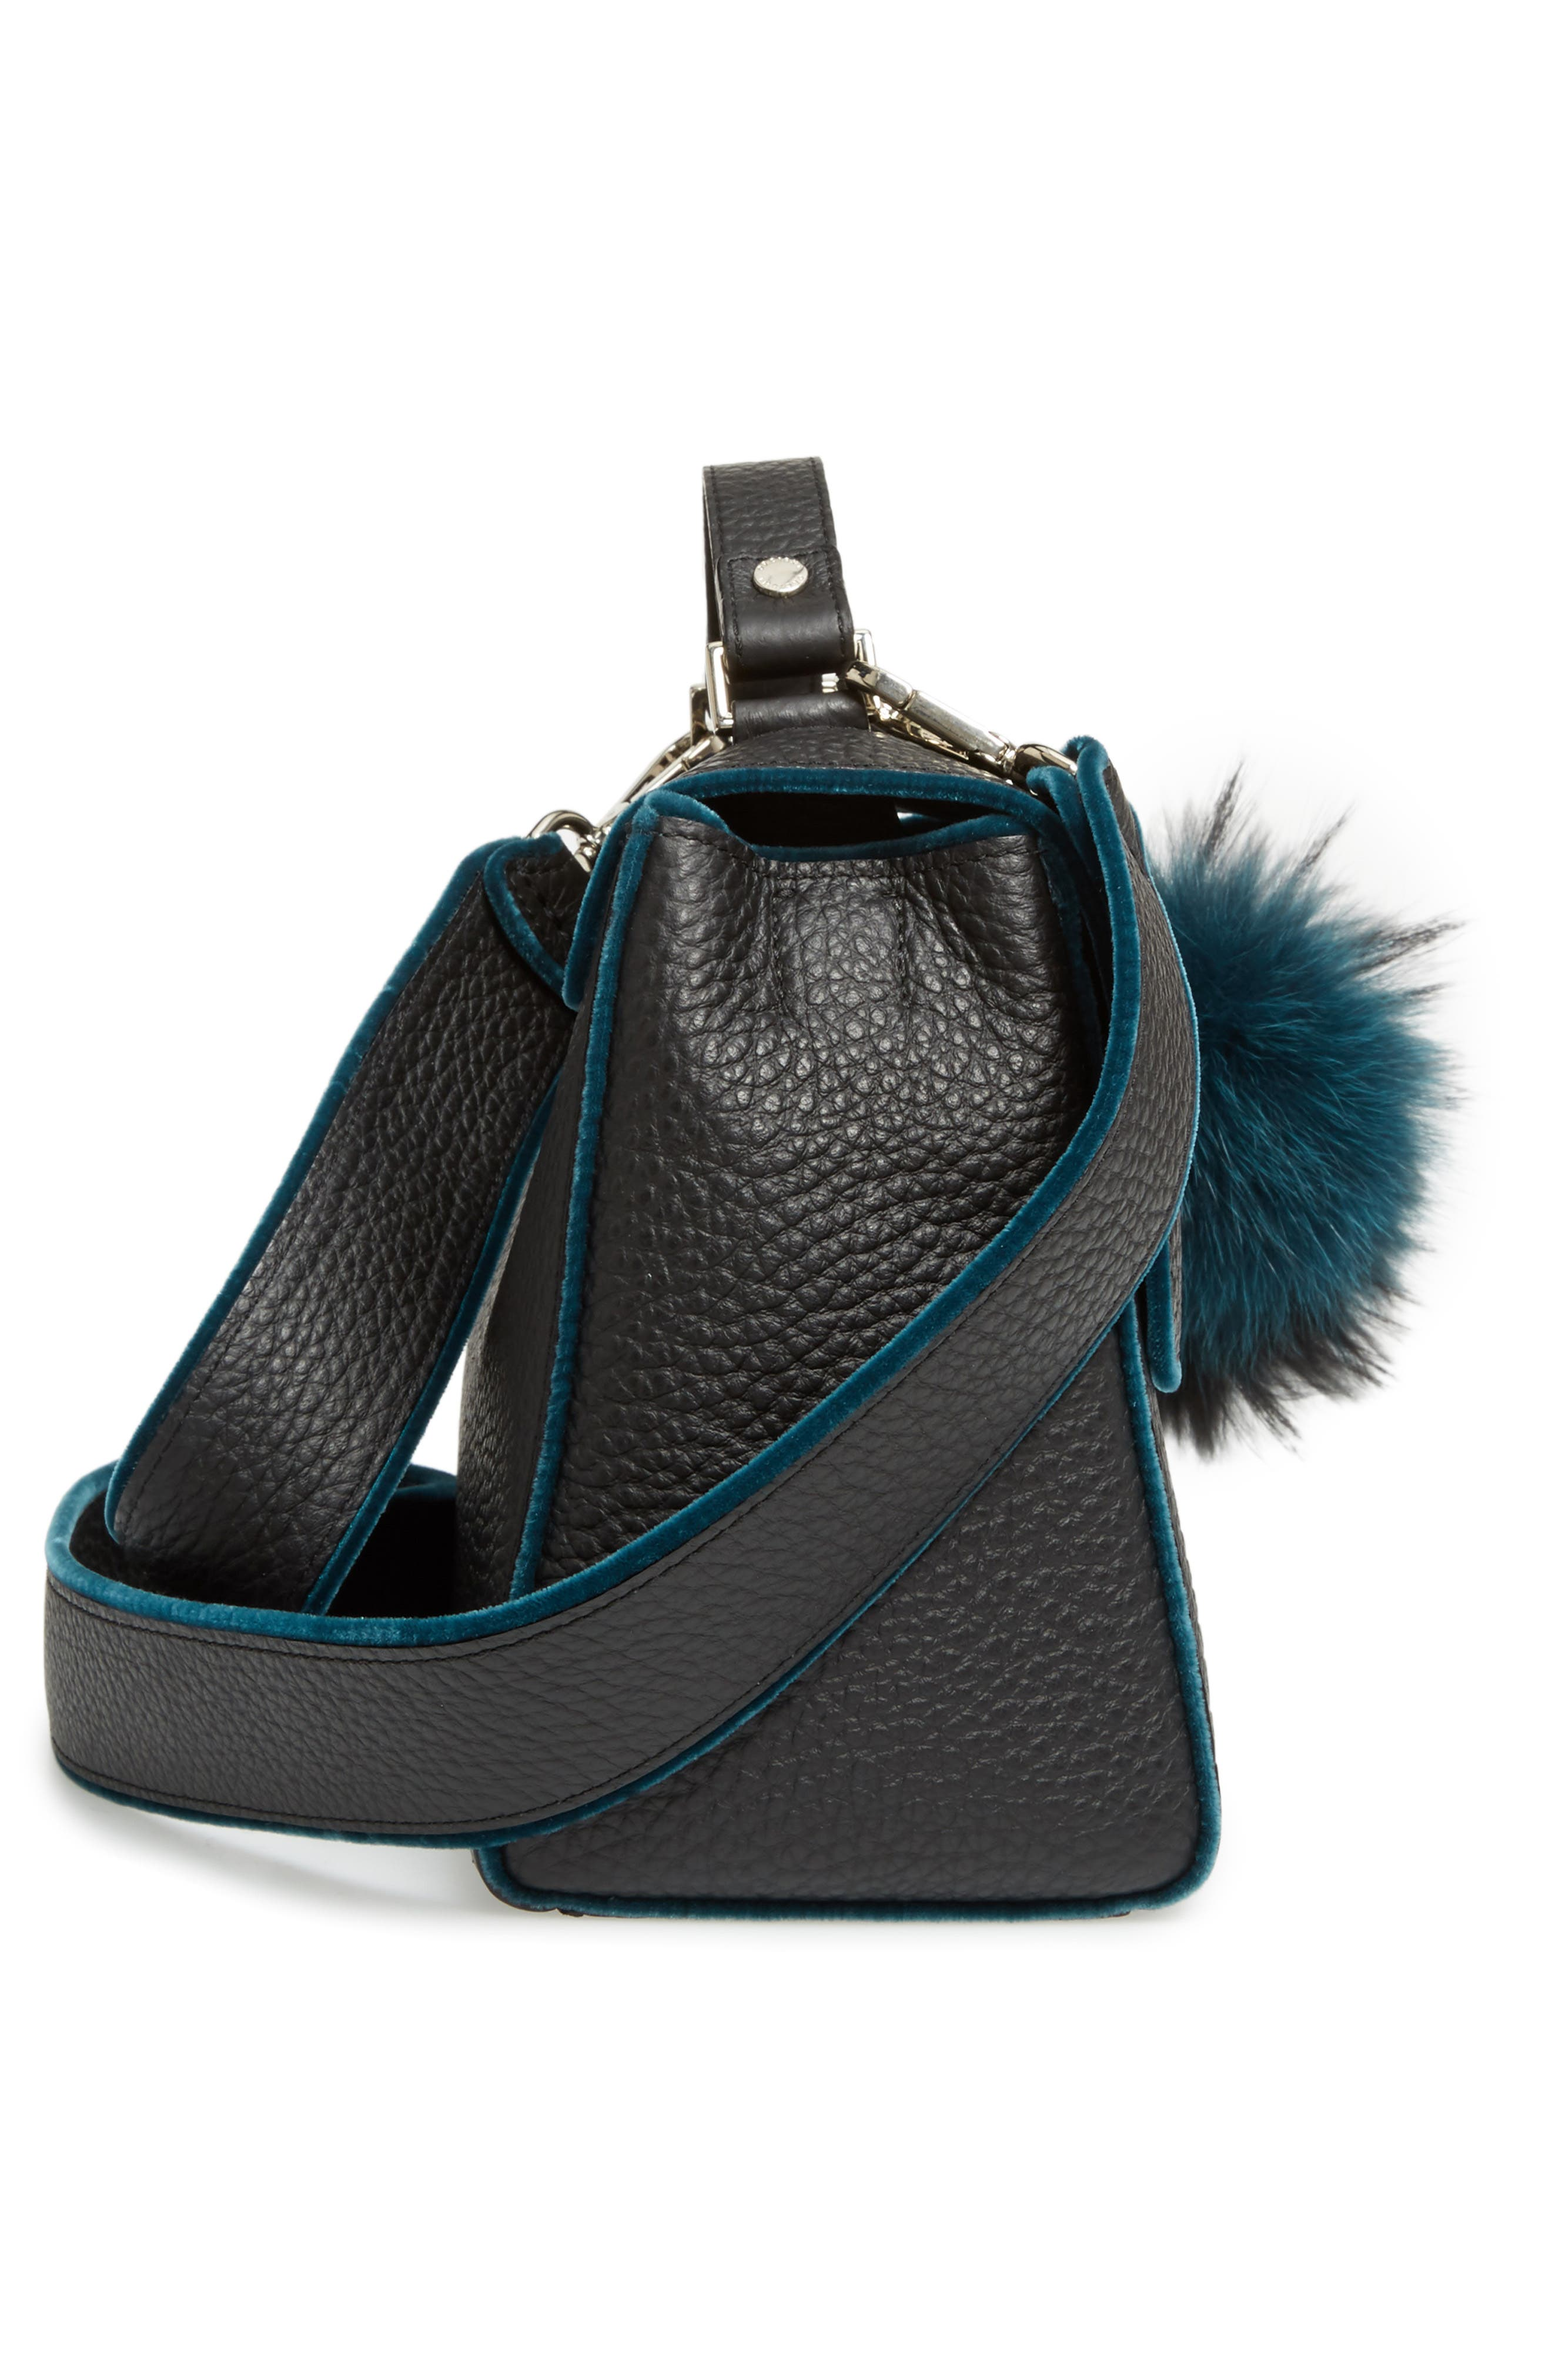 Alternate Image 4  - Orciani Small Sveva Soft Leather Top Handle Satchel with Genuine Fur Bag Charm